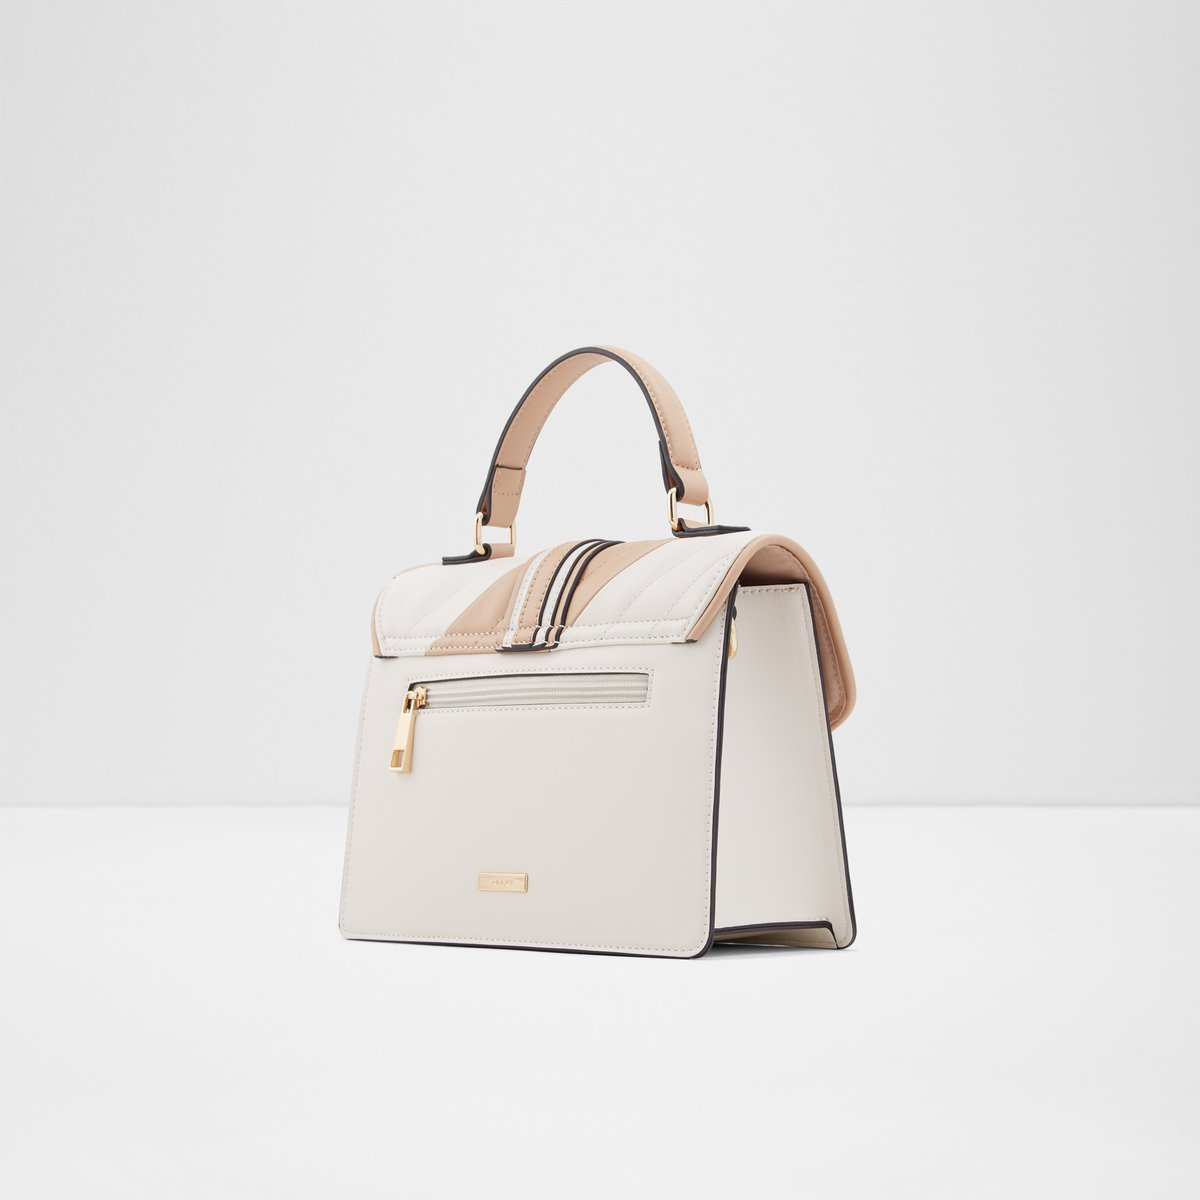 Aldo Canada Bags Clearance Online